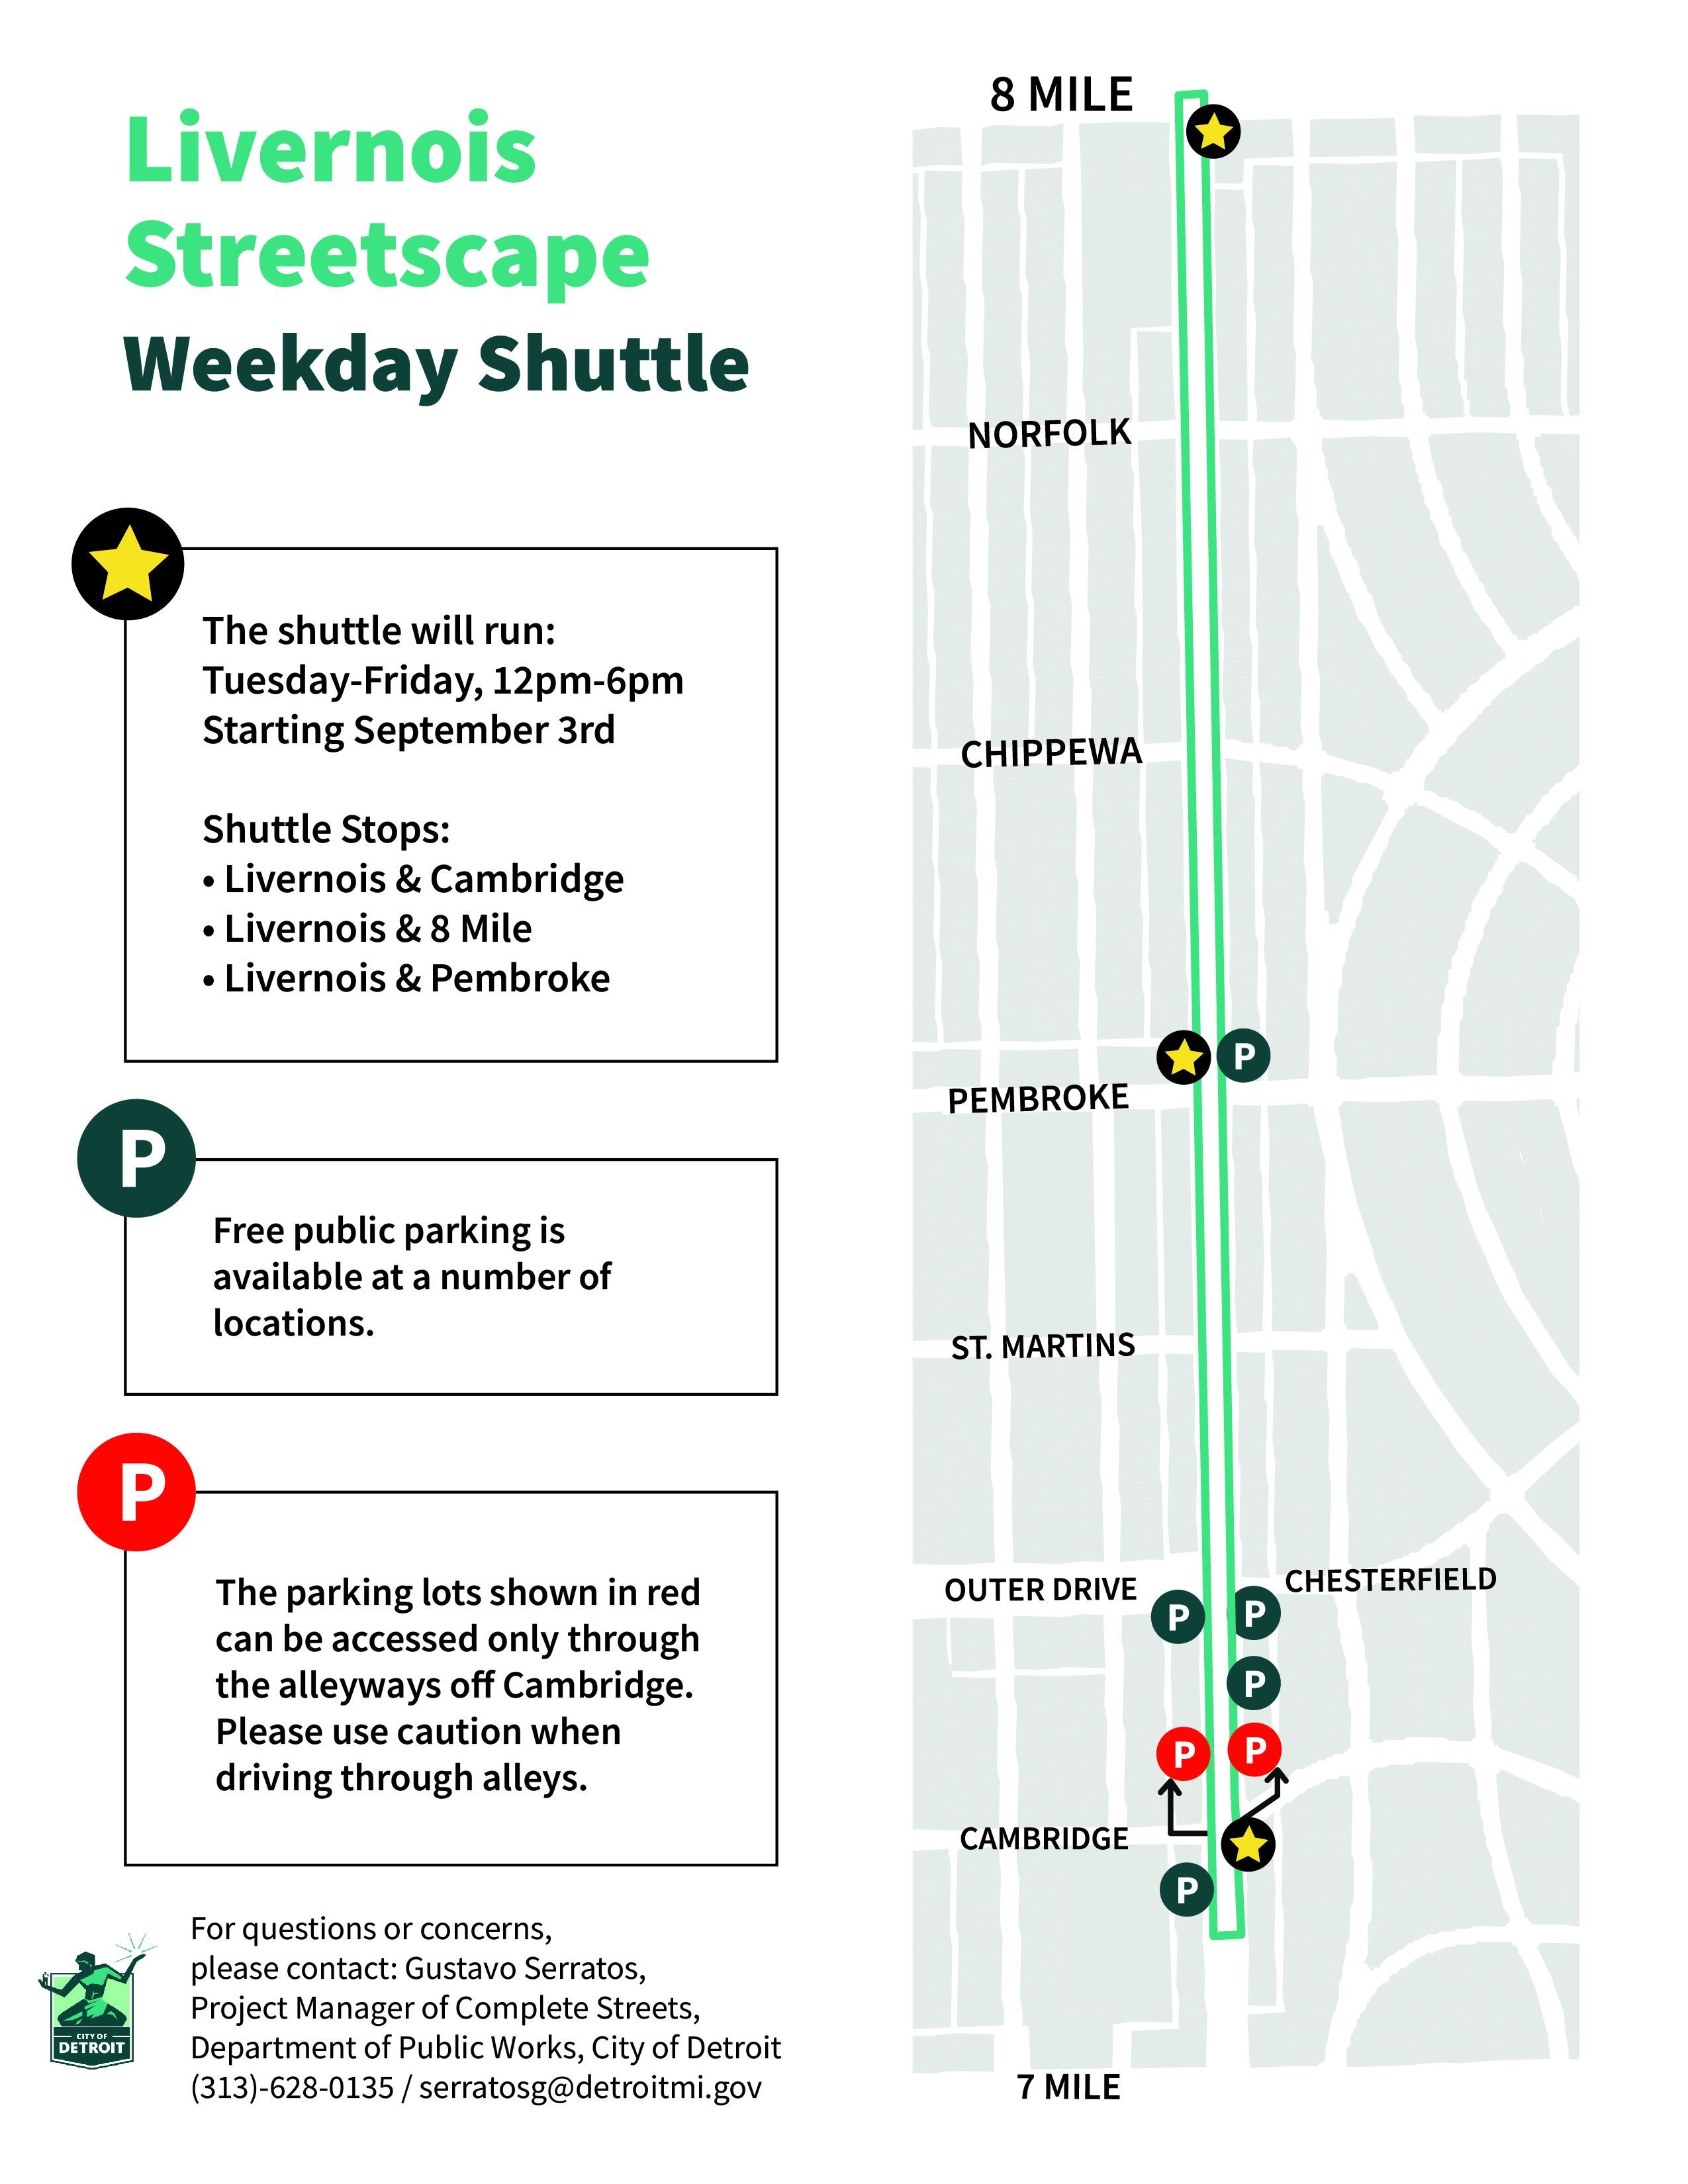 Livernois Weekday Shuttle